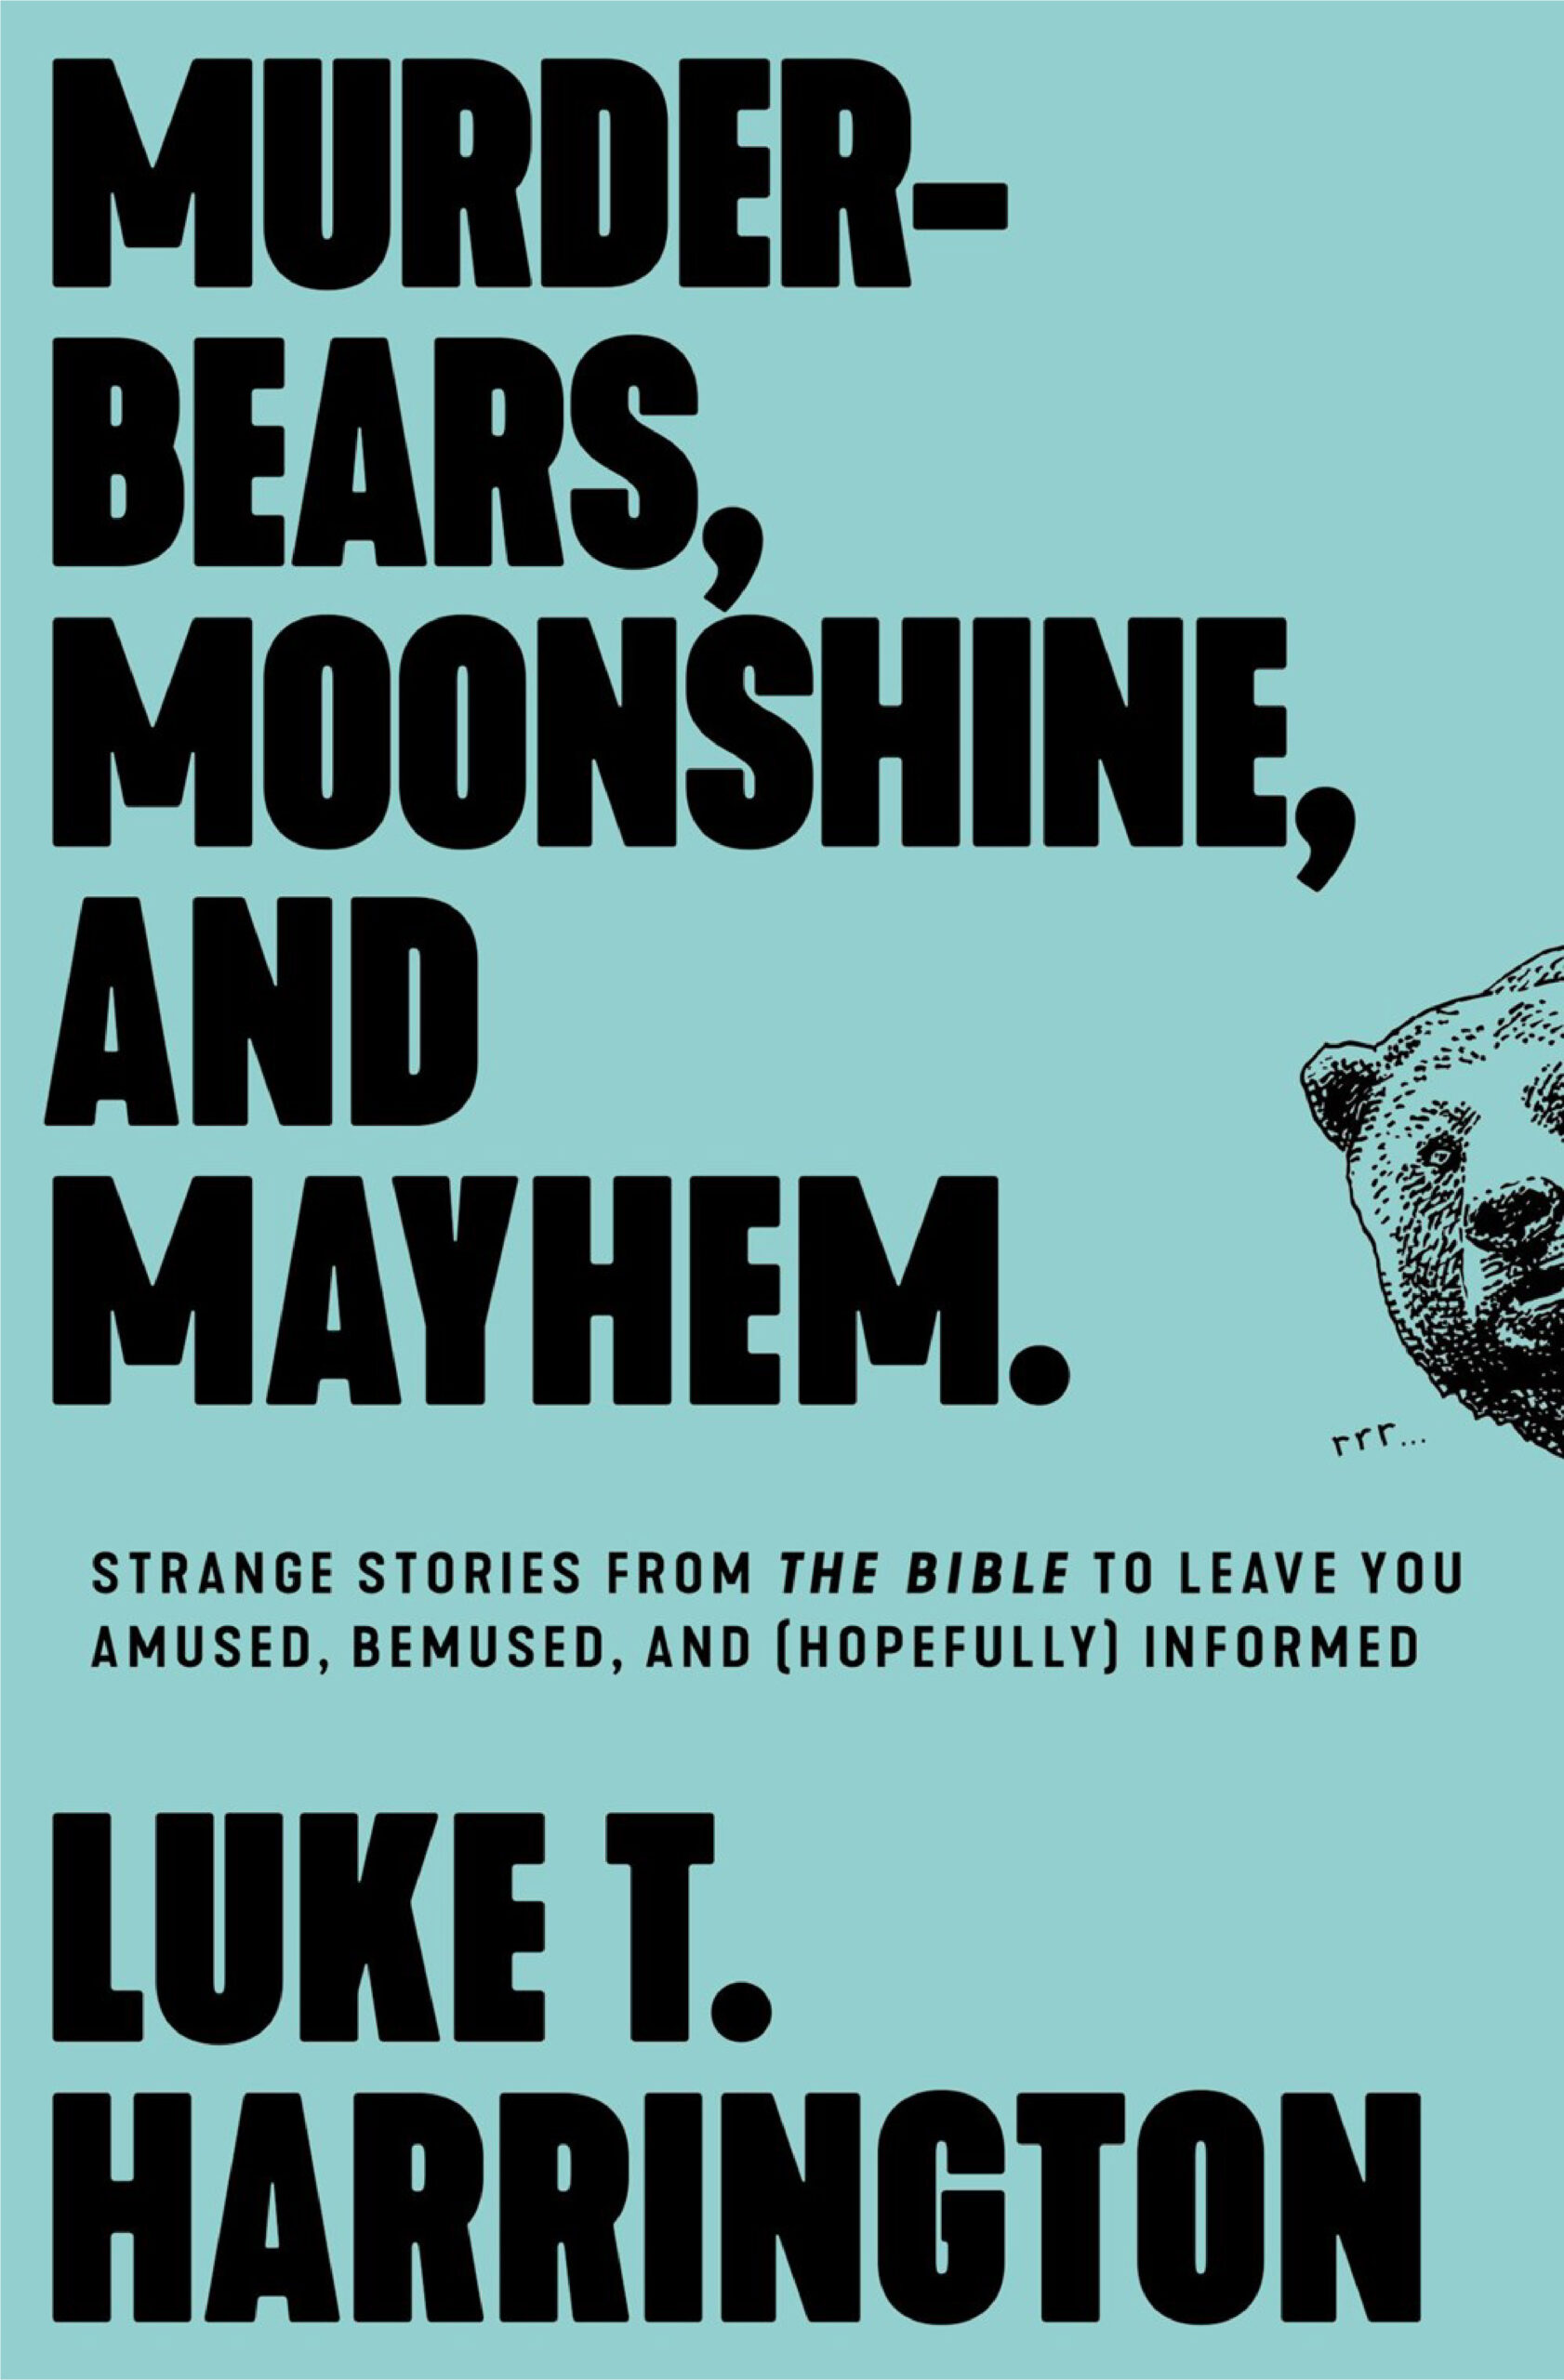 Murder-Bears, Moonshine, and Mayhem.